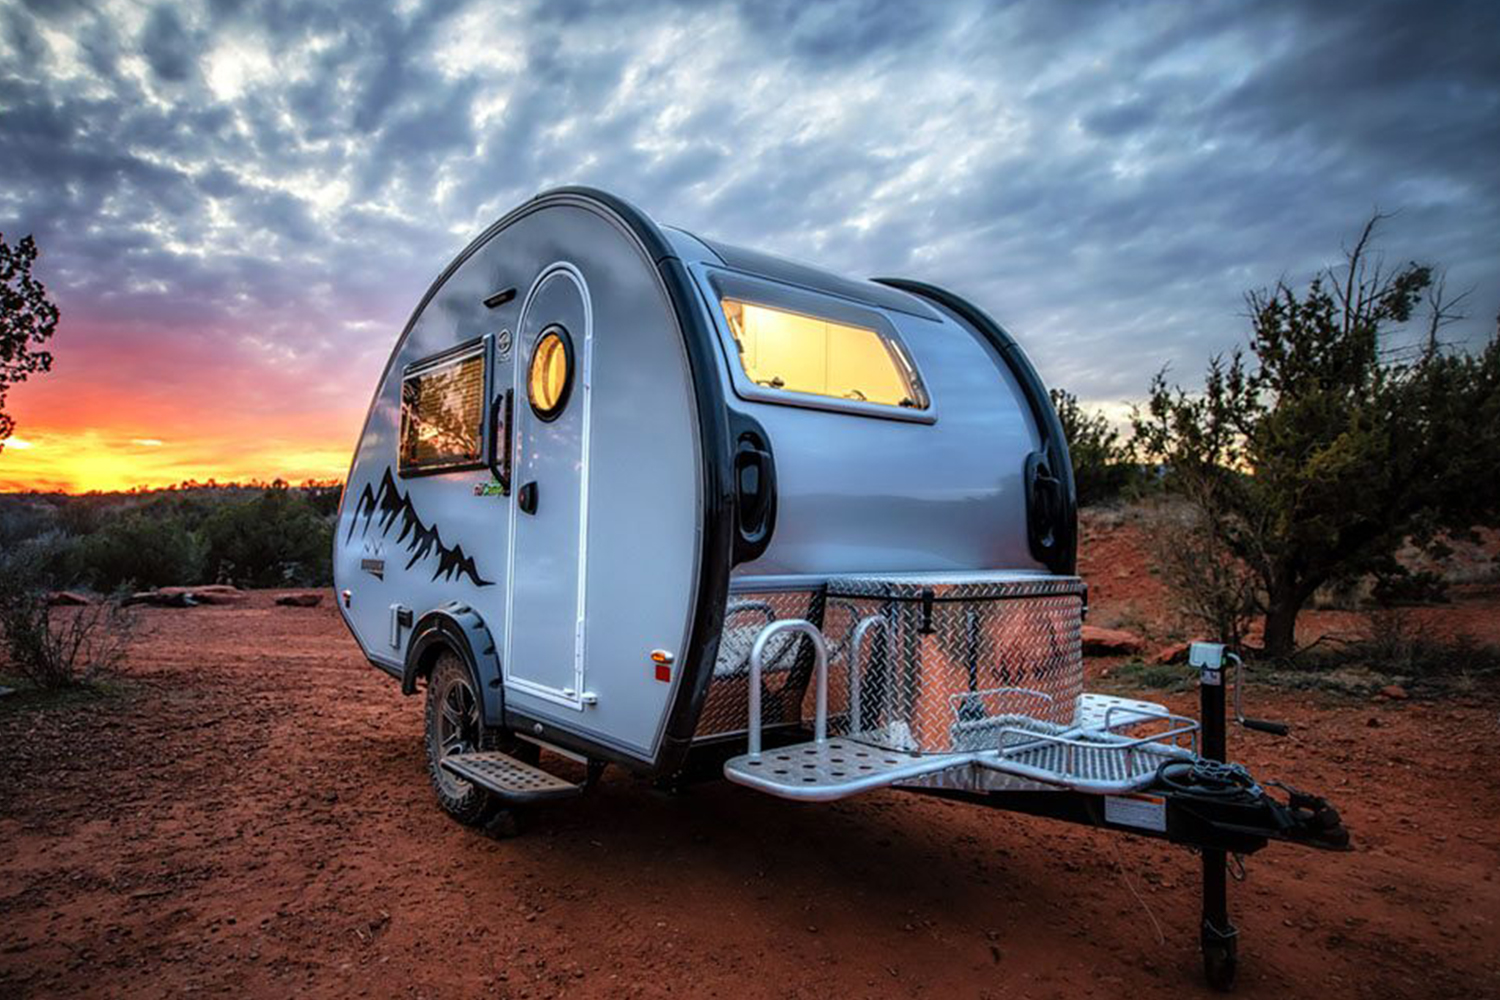 nüCamp RV TAB teardrop trailer in the outdoors